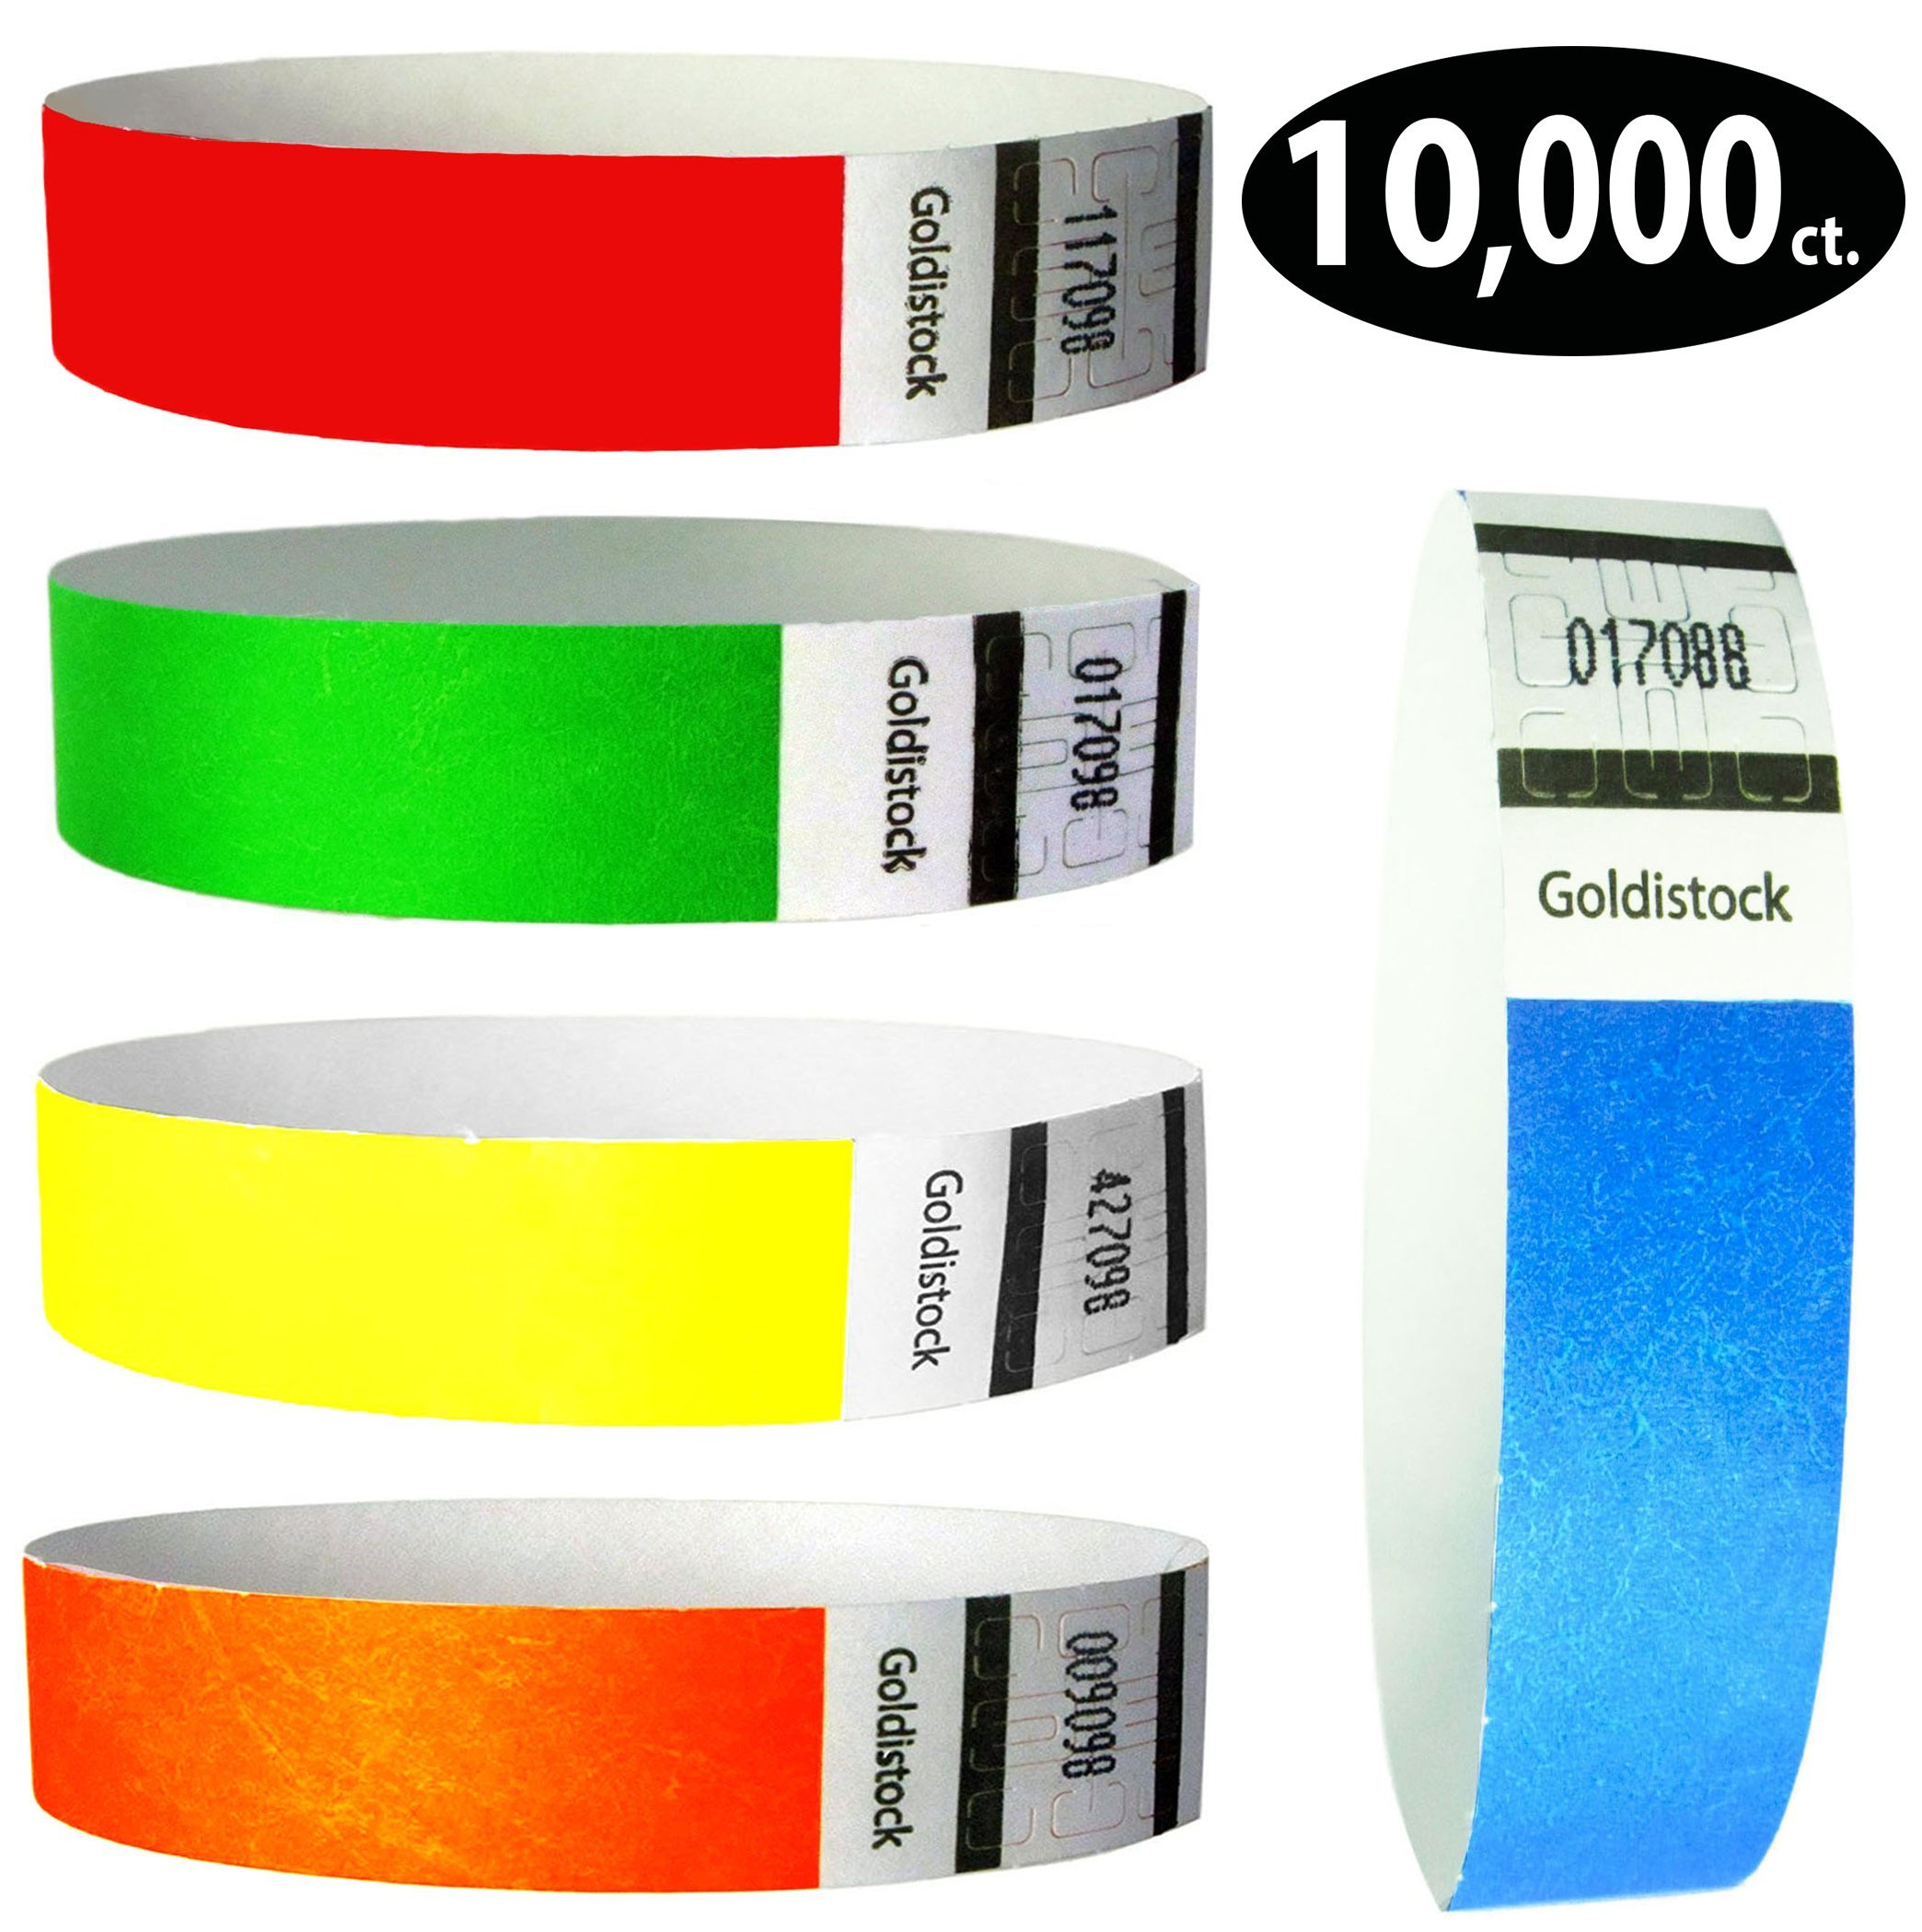 Tyvek Wristbands - Goldistock 10,000 Count Rainbow Variety Pack - ¾'' Arm Bands -2,000 Each: Neon Green, Blue, Red, Yellow & OrangeParty Armbands - Heavier Tyvek Wrist Bands = SuperiorEvents by Goldistock